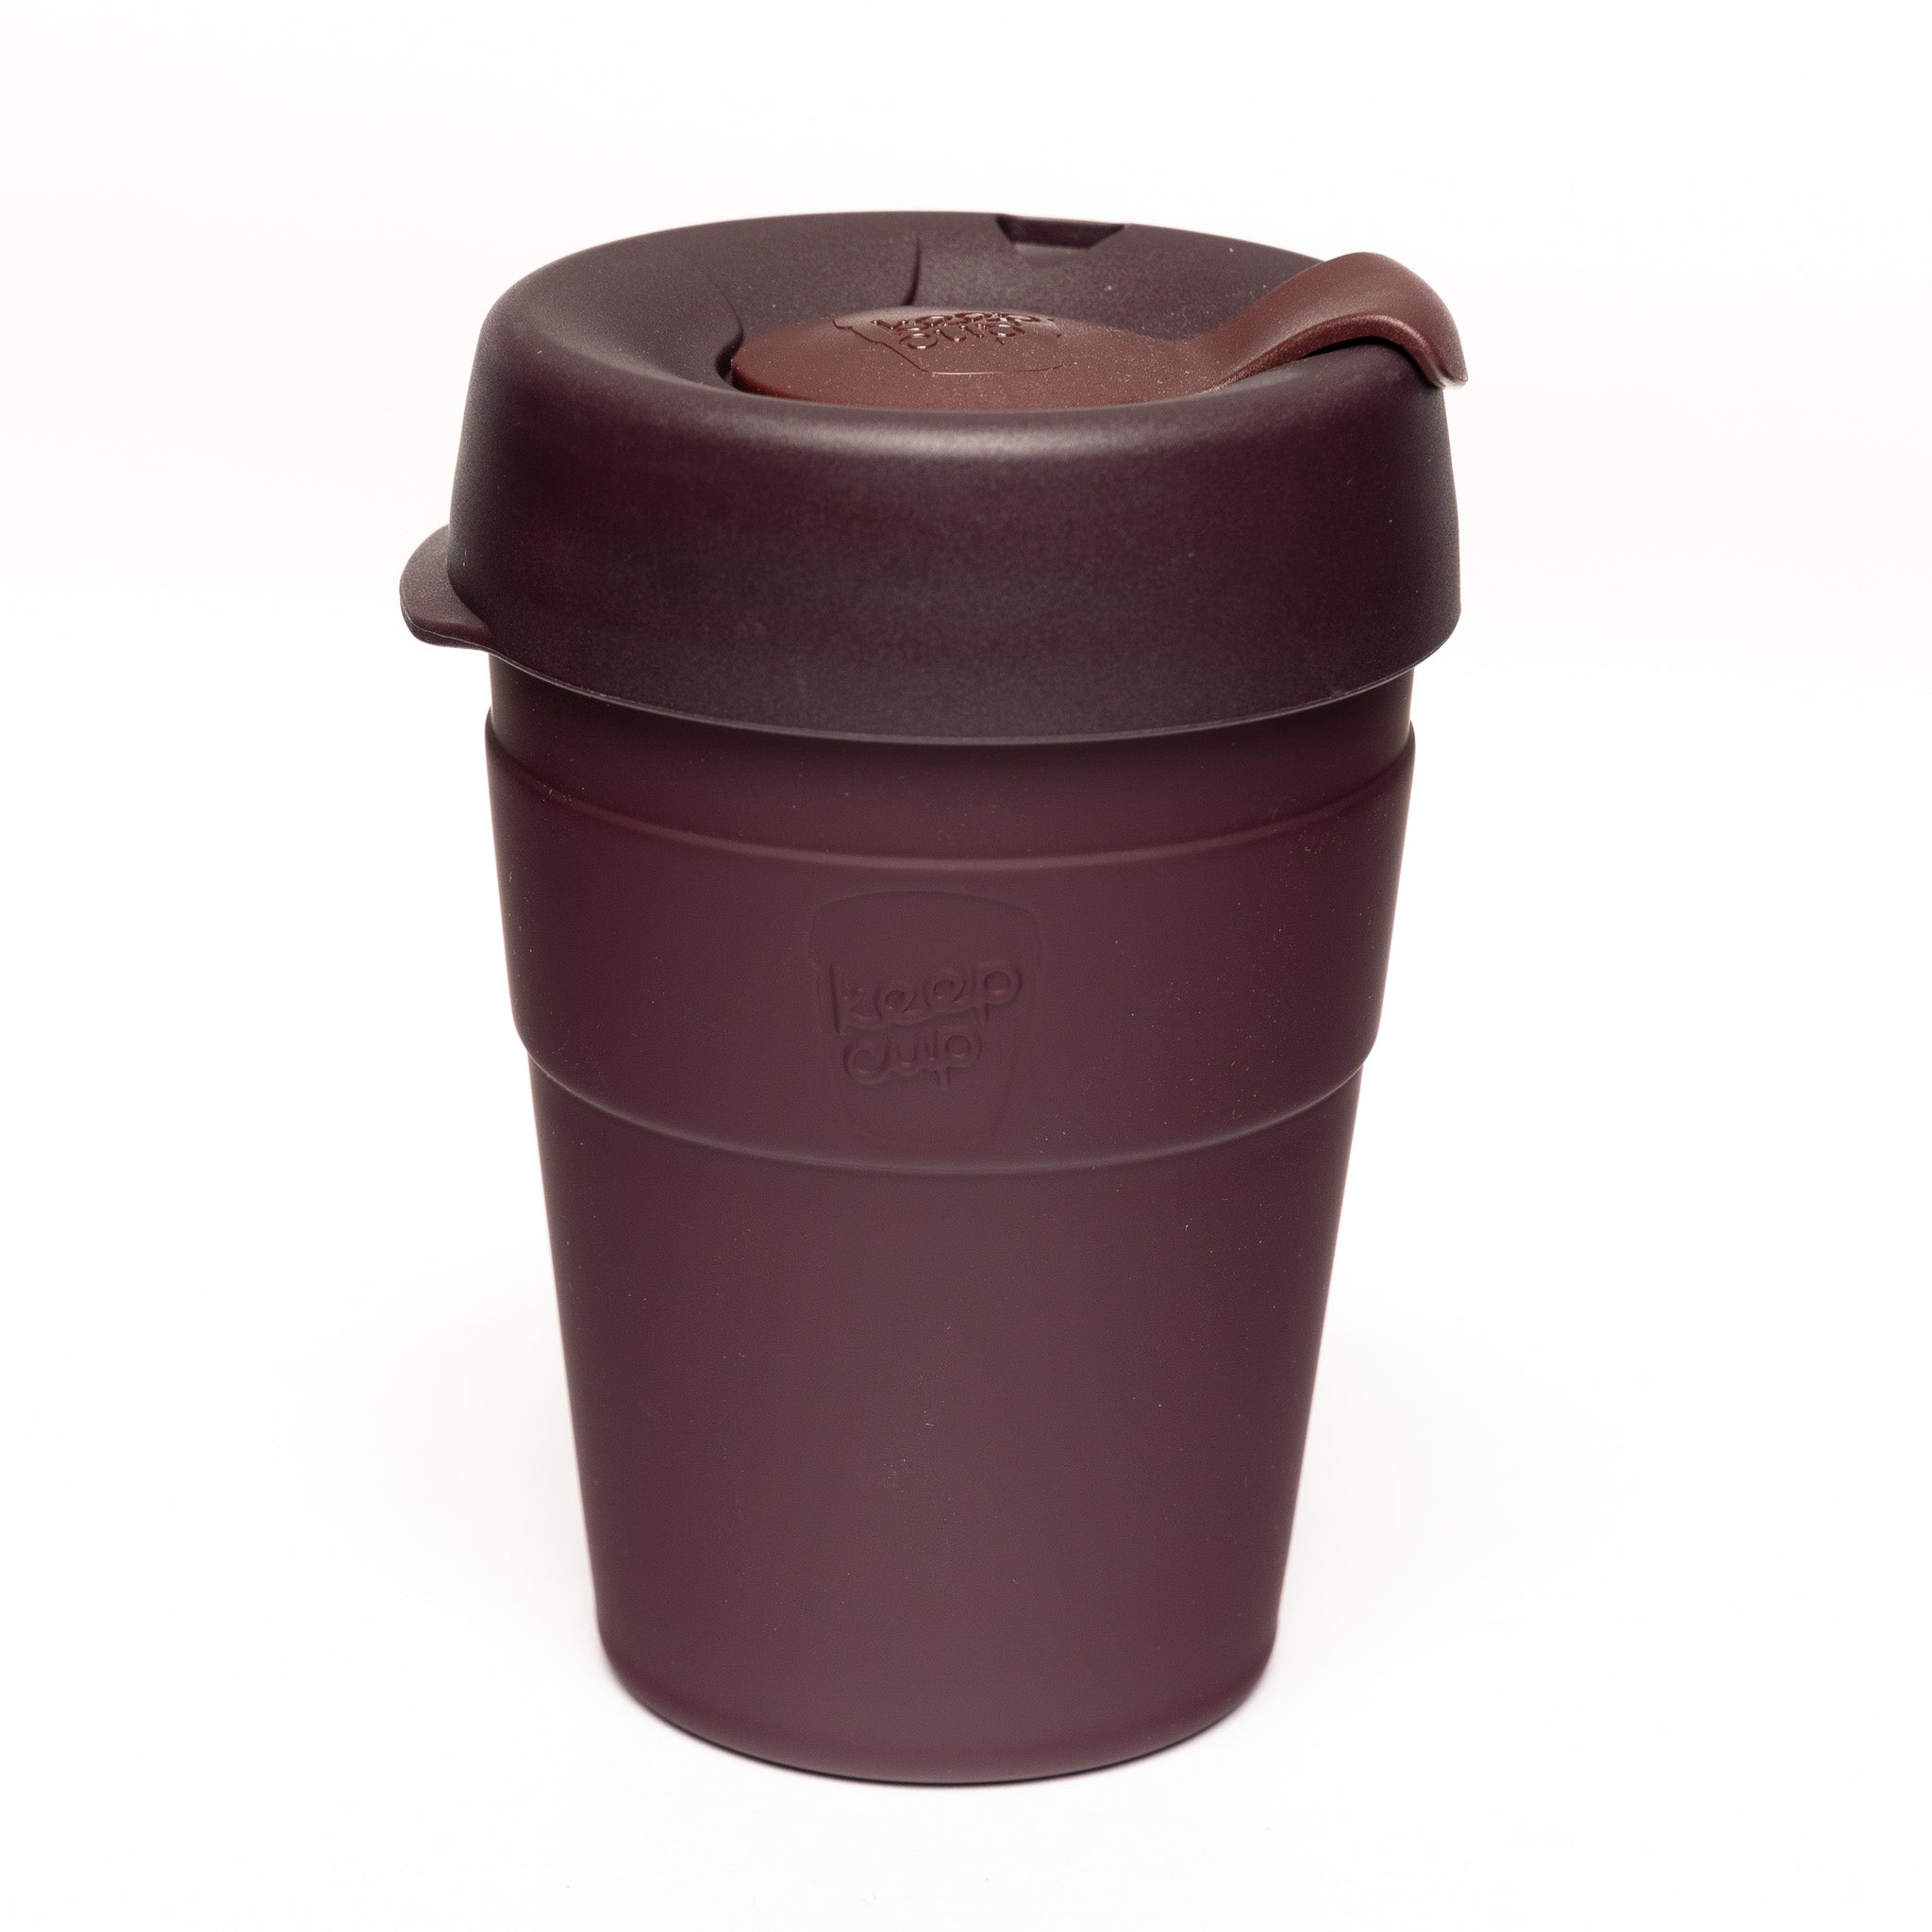 Thermal Reusable Coffee Cup - 12oz - Alder